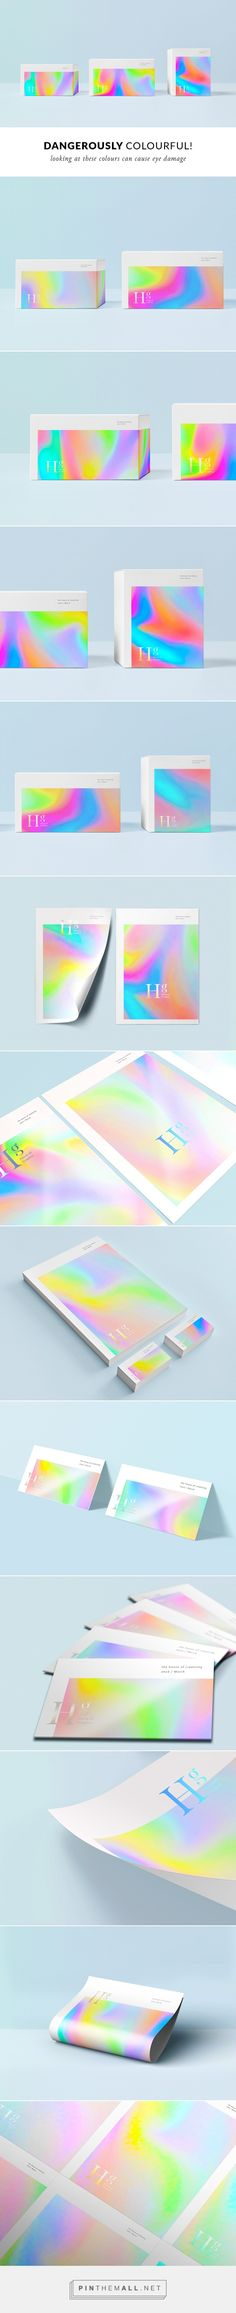 House of Graphics | the house of creativity on Behance - created via…